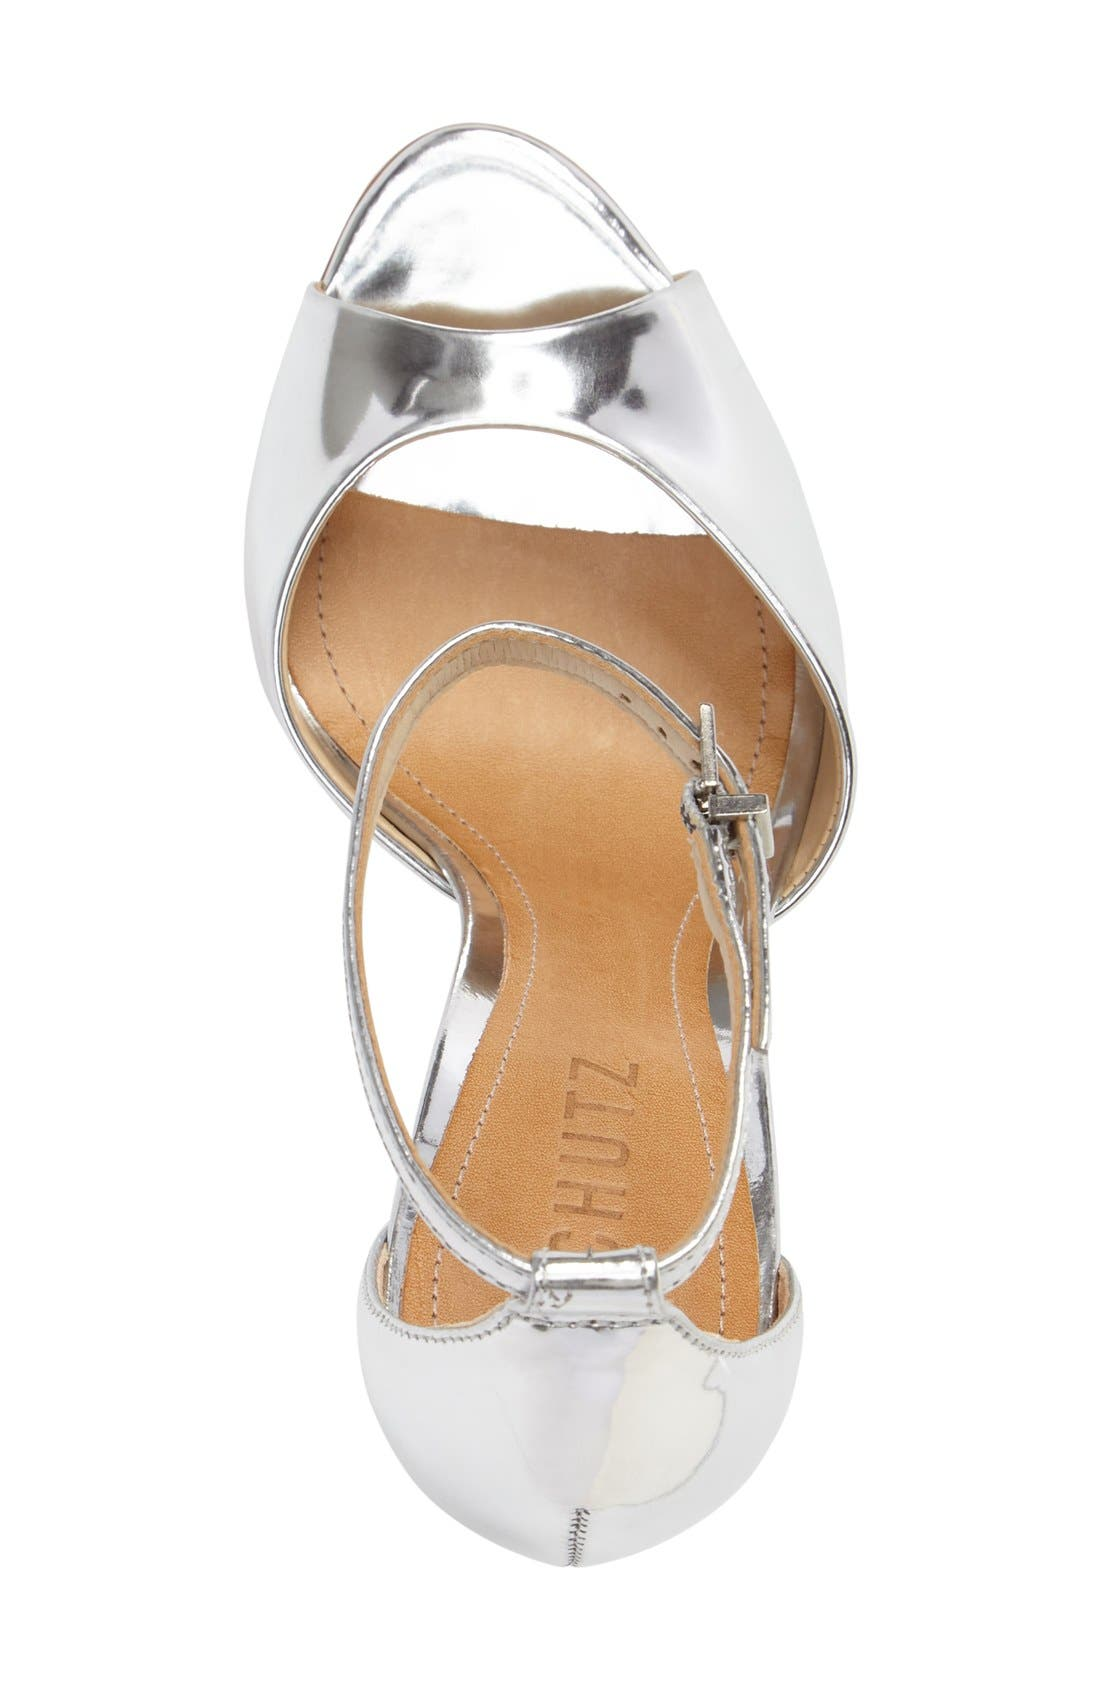 Saasha Lee Ankle Strap Sandal,                             Alternate thumbnail 3, color,                             Silver Leather